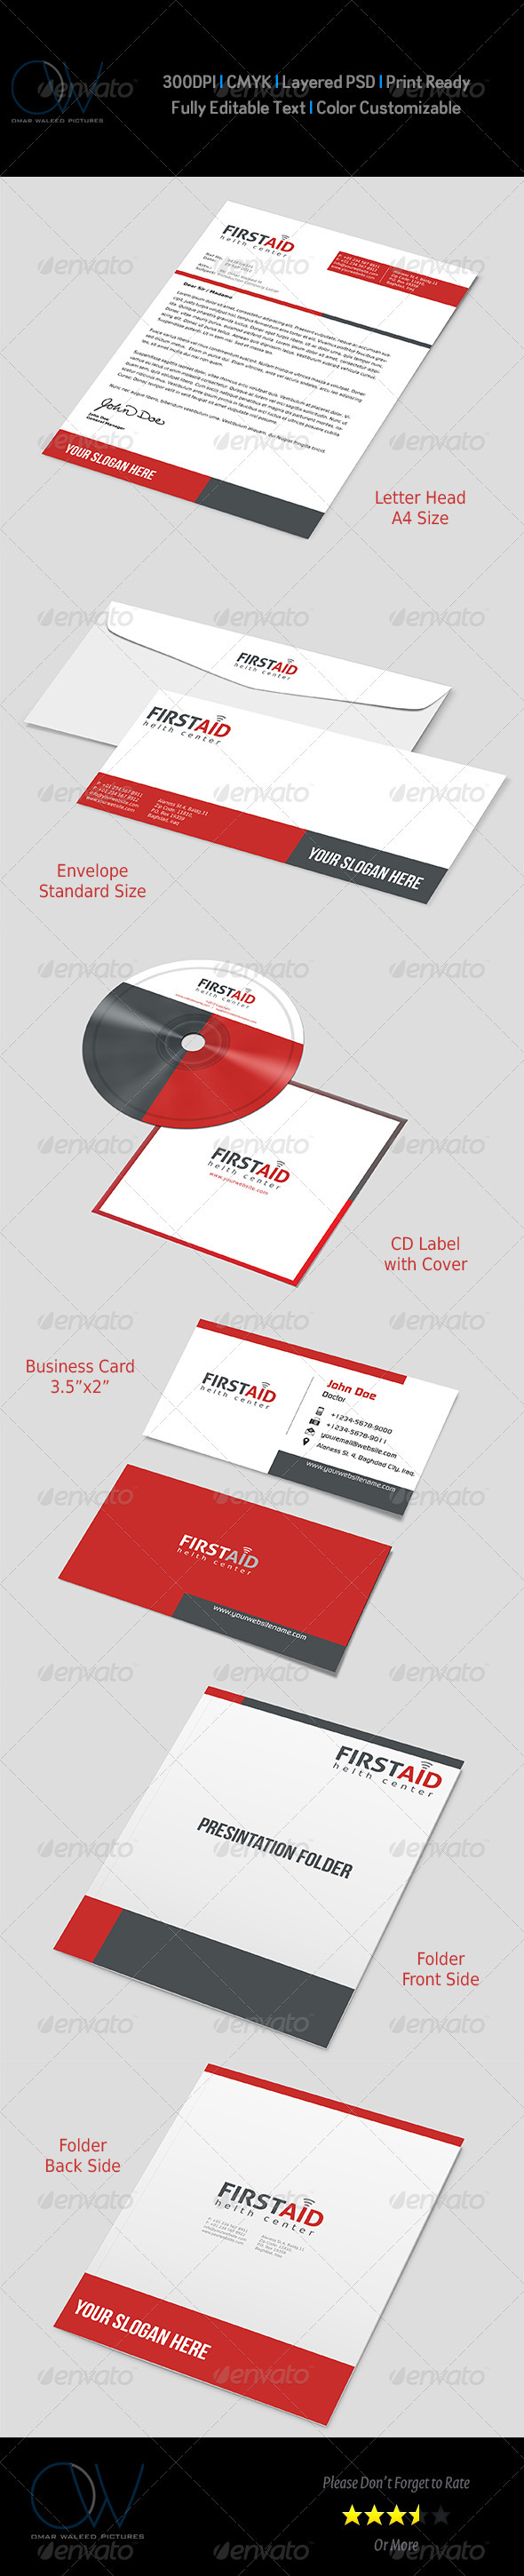 Corporate Stationary Pack Vol.3 - Stationery Print Templates